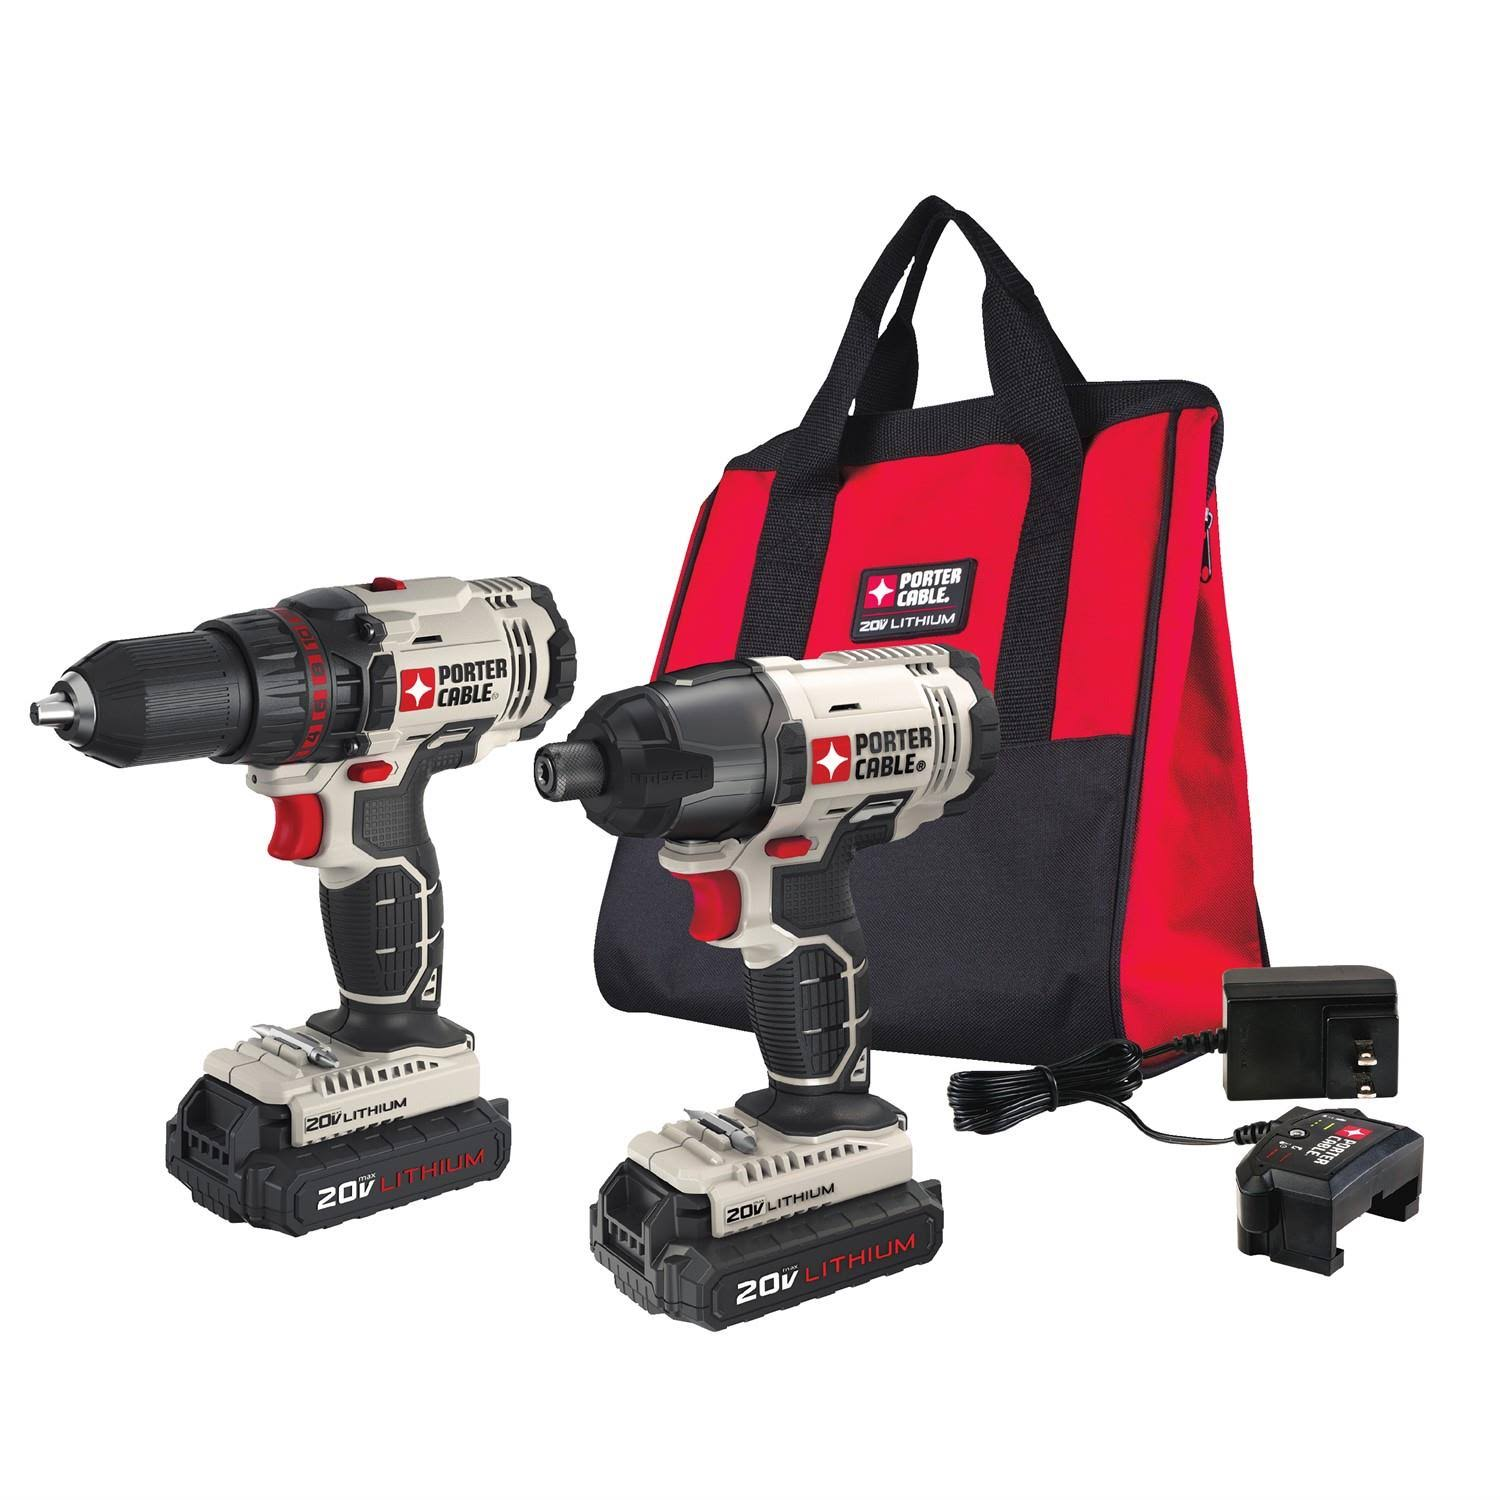 Porter-Cable PCCK604L2 20V Max Cordless Lithium-Ion Drill Driver and Impact Drill Kit